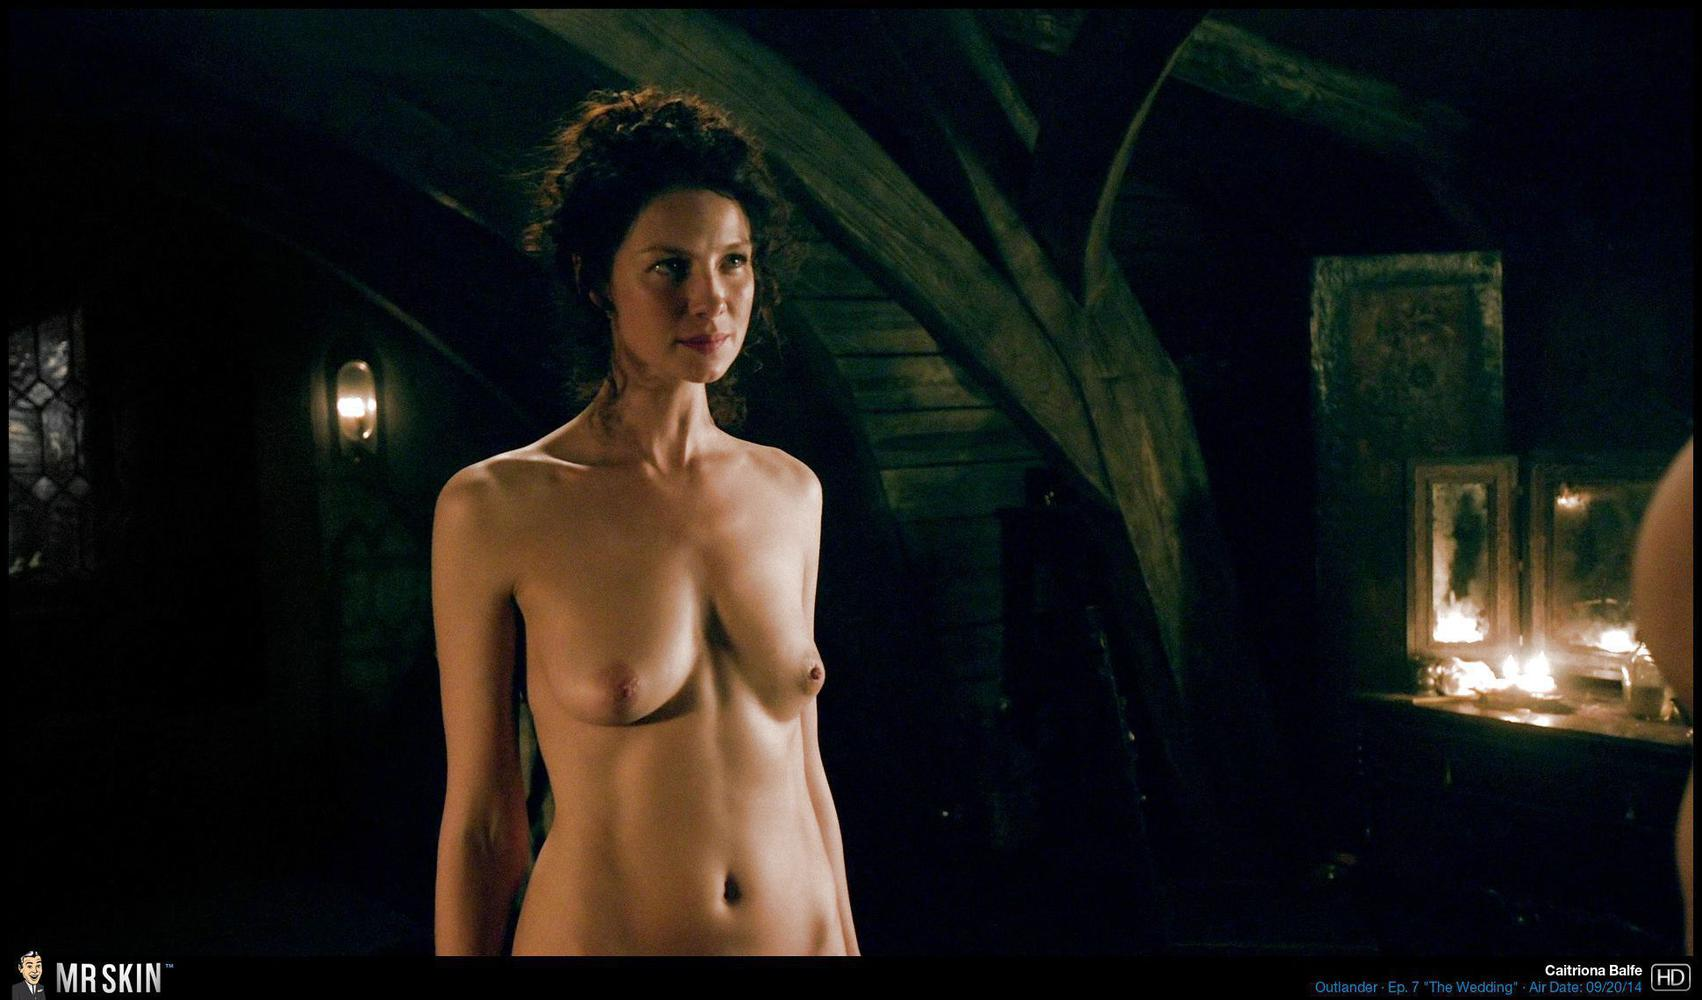 Caitriona balfe and lotte verbeek nude outlander s01e10 6